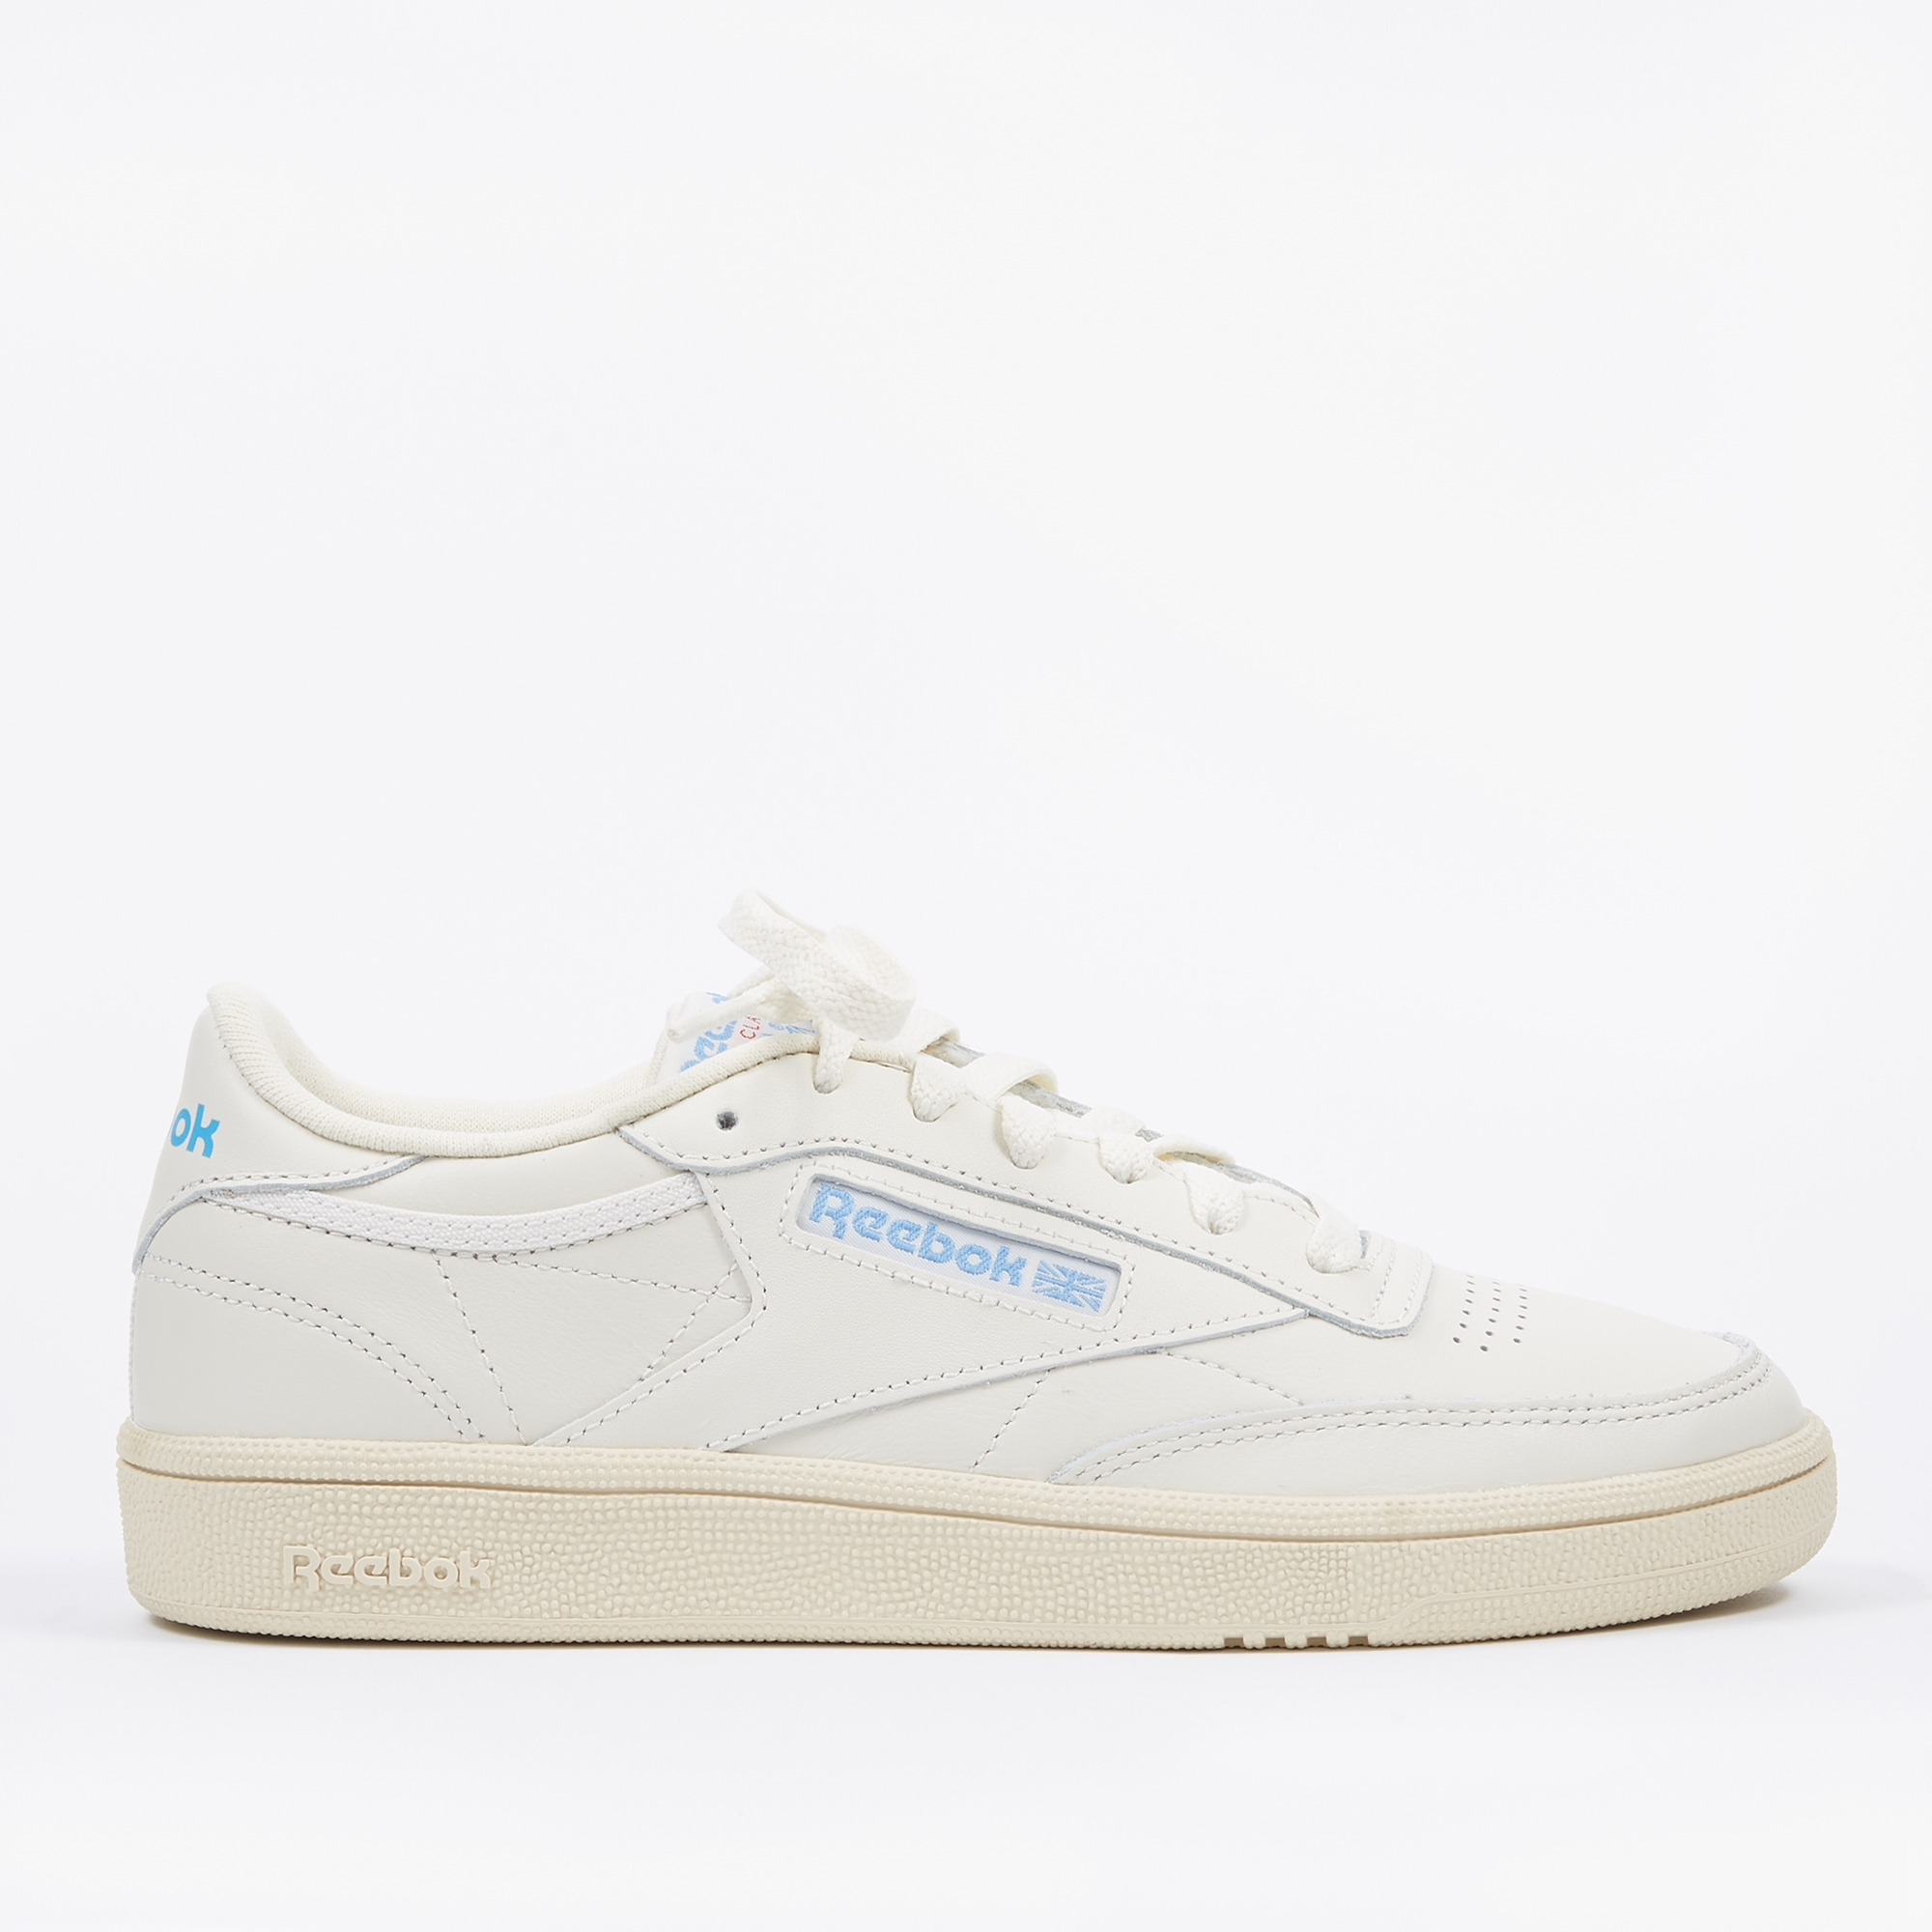 97017bca480b Reebok Club C 85 - Vintage Chalk Paper White Athletic Blue Exec